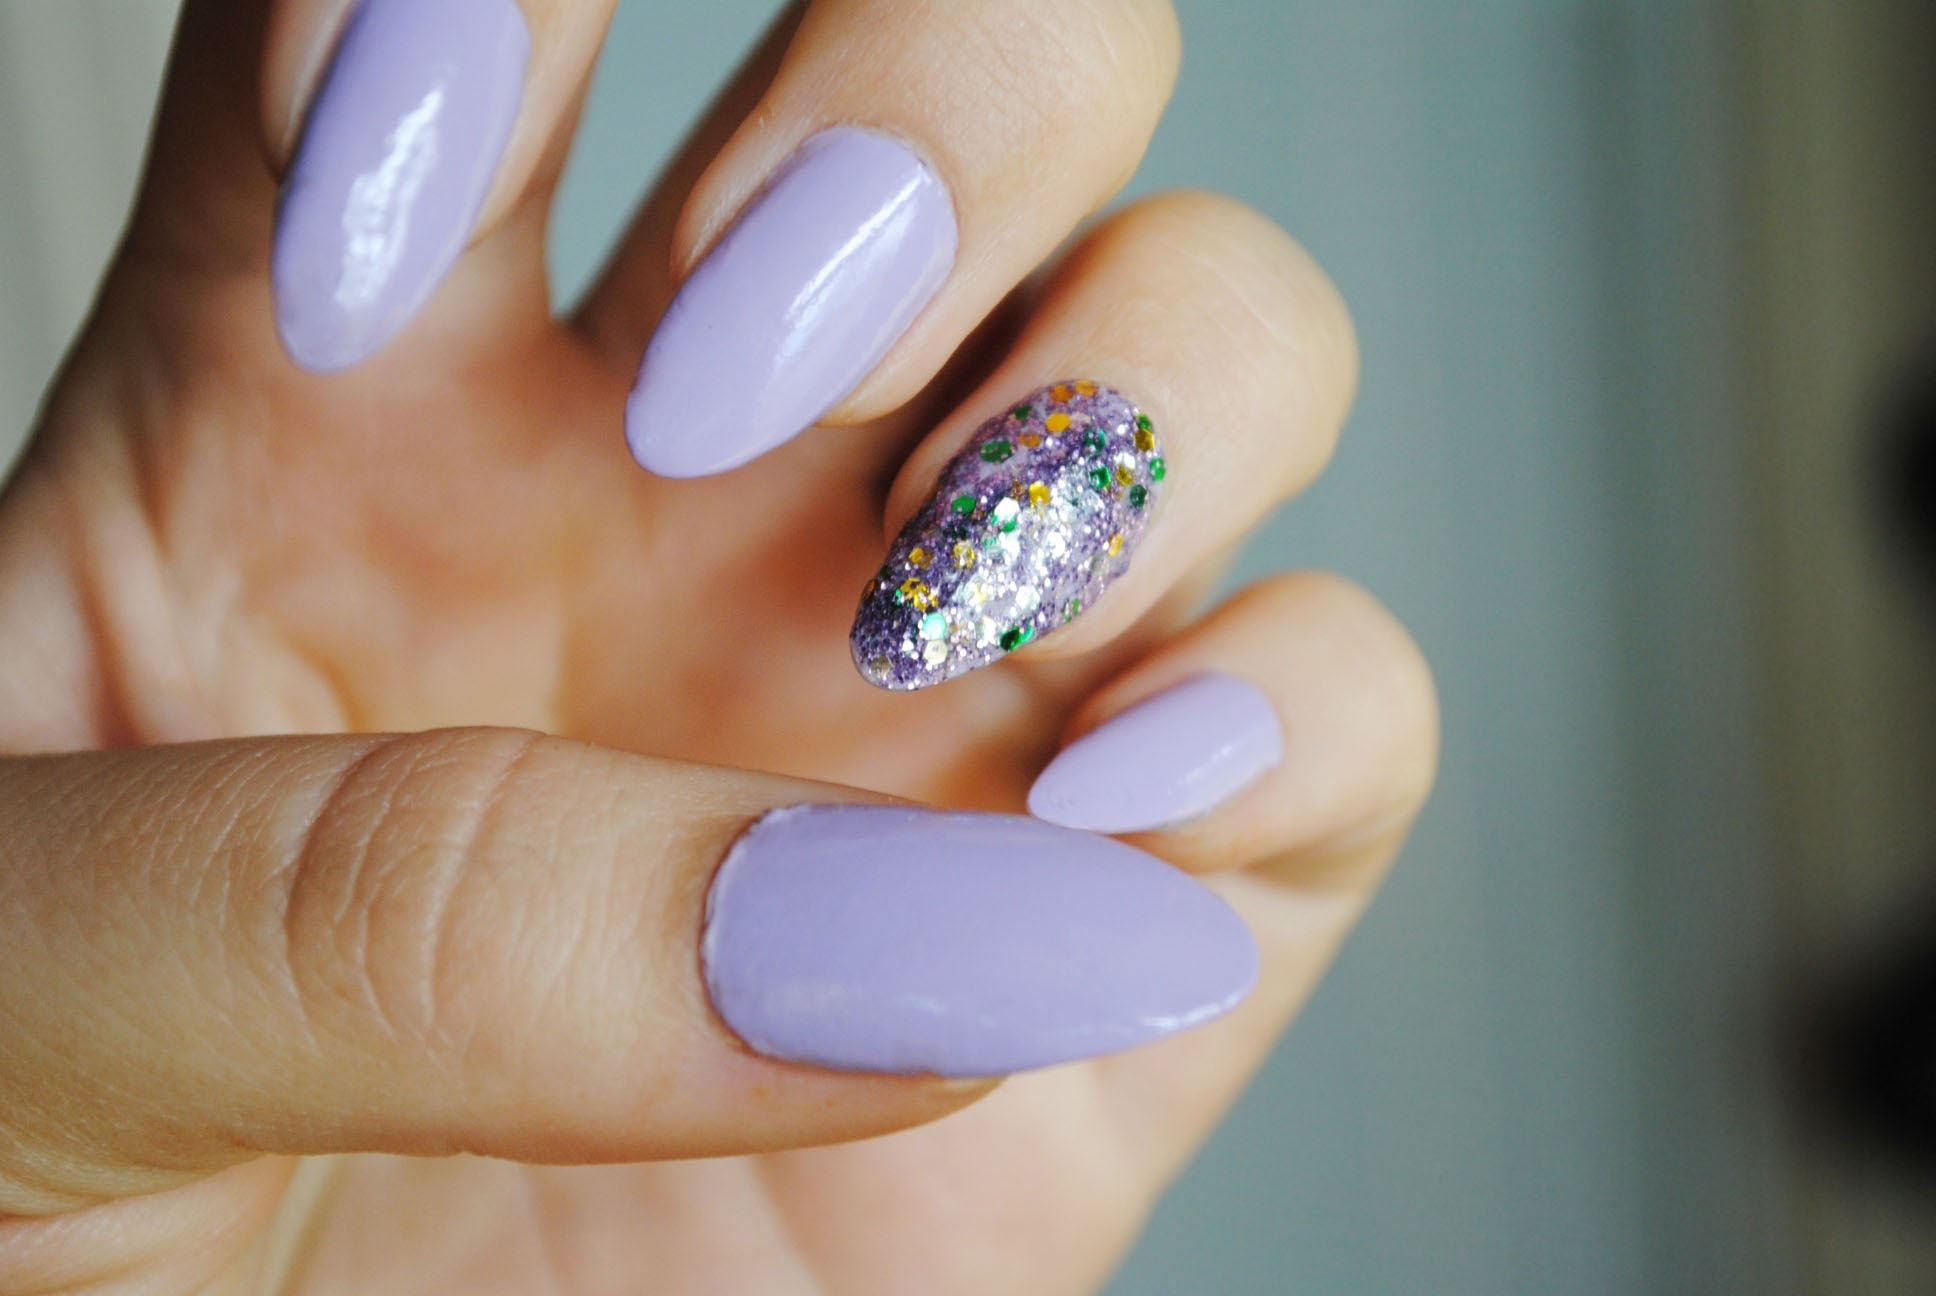 Diy acrylic nail designs short stiletto nails with a glitter accent solutioingenieria Choice Image